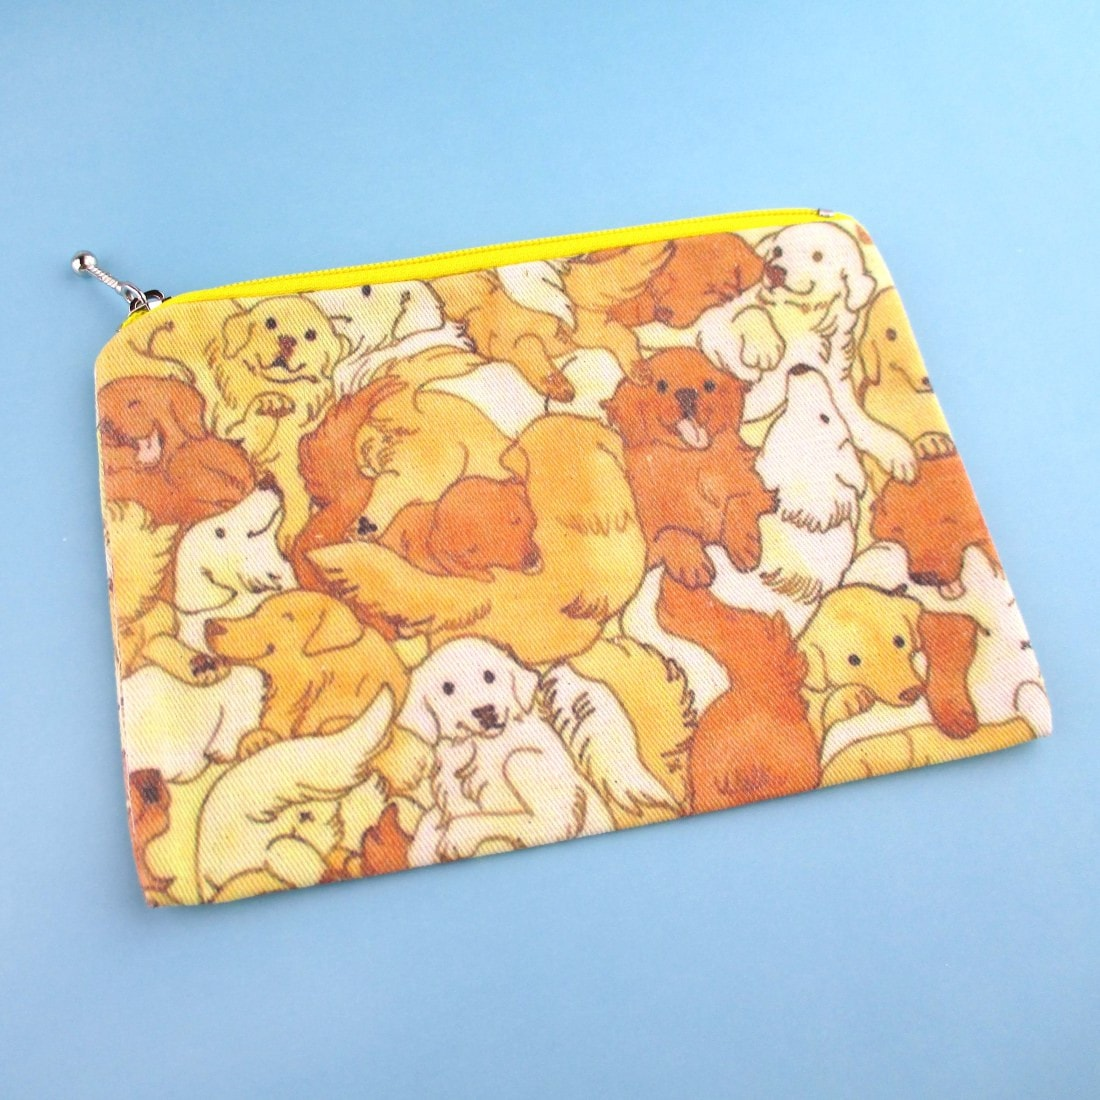 Illustrated Golden Retriever Puppy Dog Collage Print Rectangular Make Up Bag